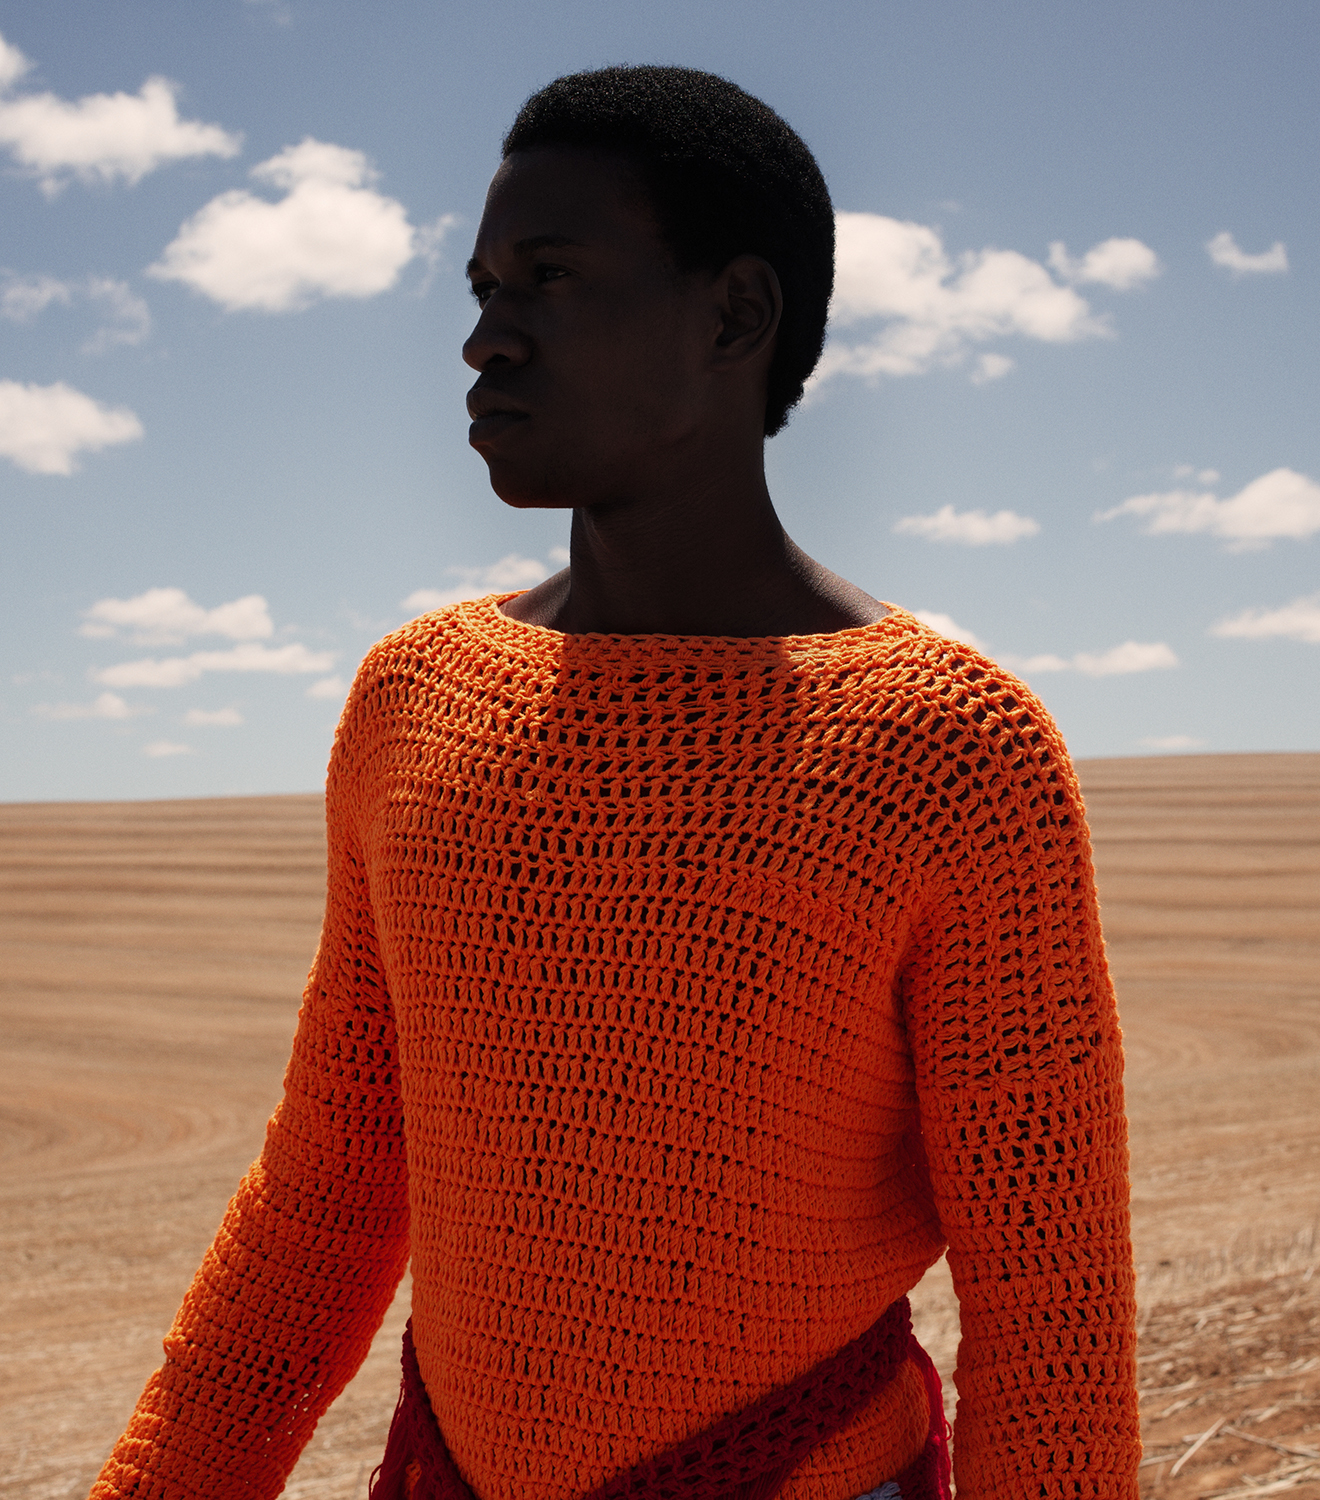 Orange Culture A/W 16:17 Ad Campaign  Collaborations:  Jewelry: Neon Zinn  Shoes: Maxivive  Bags: Nodrog Street  Photography: Travys Owen at One League Agency  Styling/Art Direction: Gabrielle Kannemeyer  Models: Kwen Maye, Ronald Agbazagan, Kevwe, and Samuel Mukhuwana at 20 Model Management